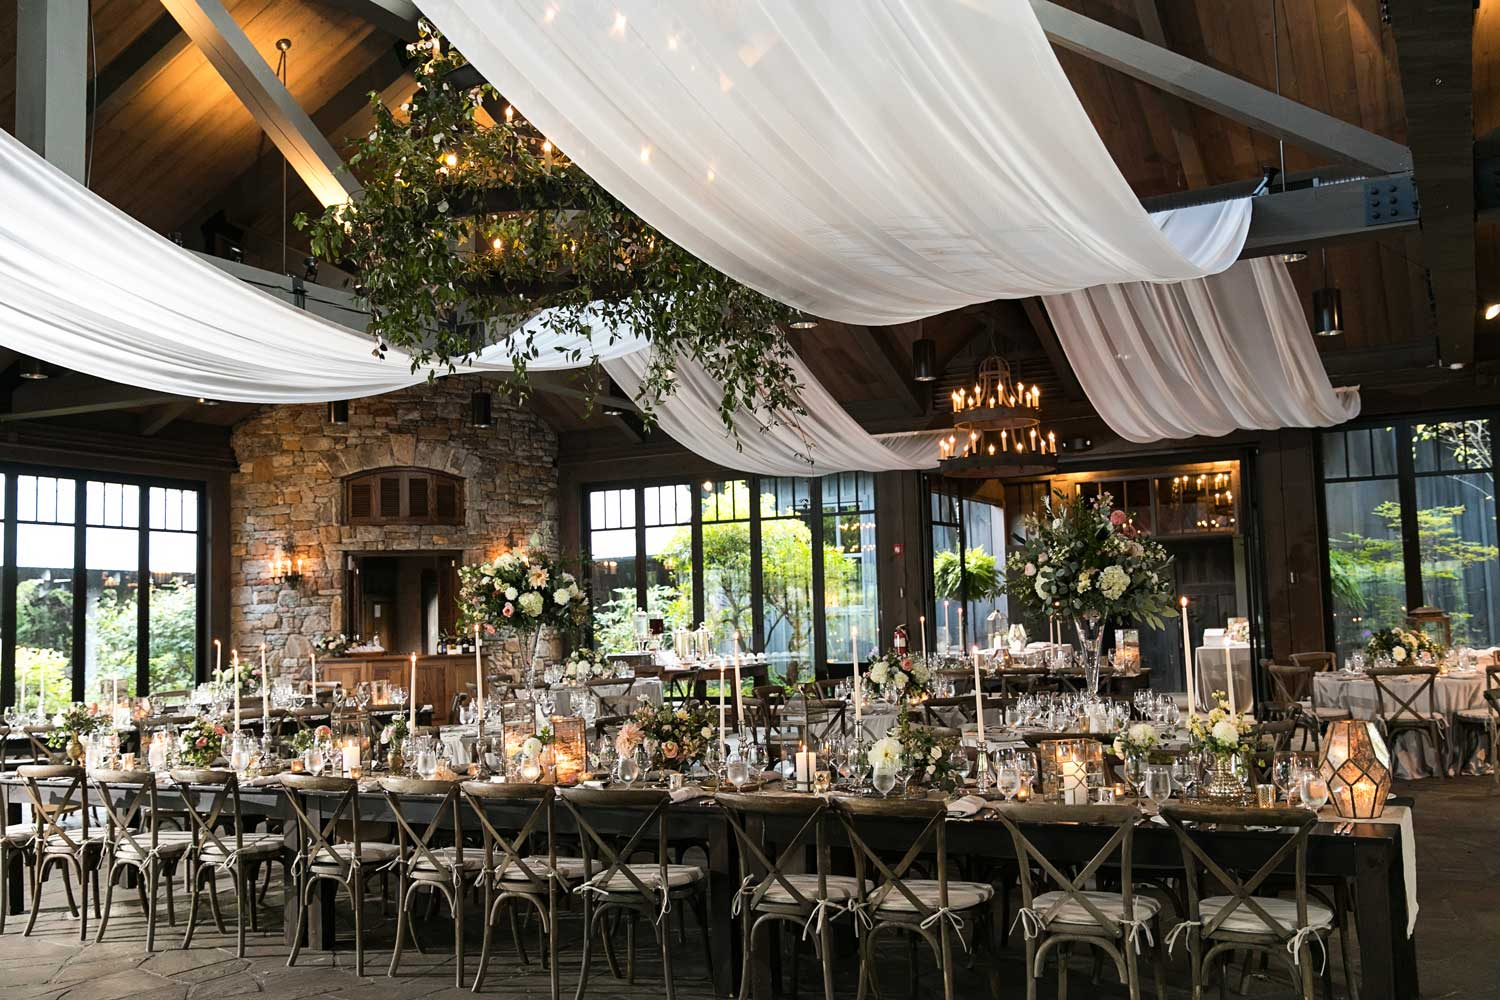 rustic elegant wedding reception with drapery hanging from wood beams over tables